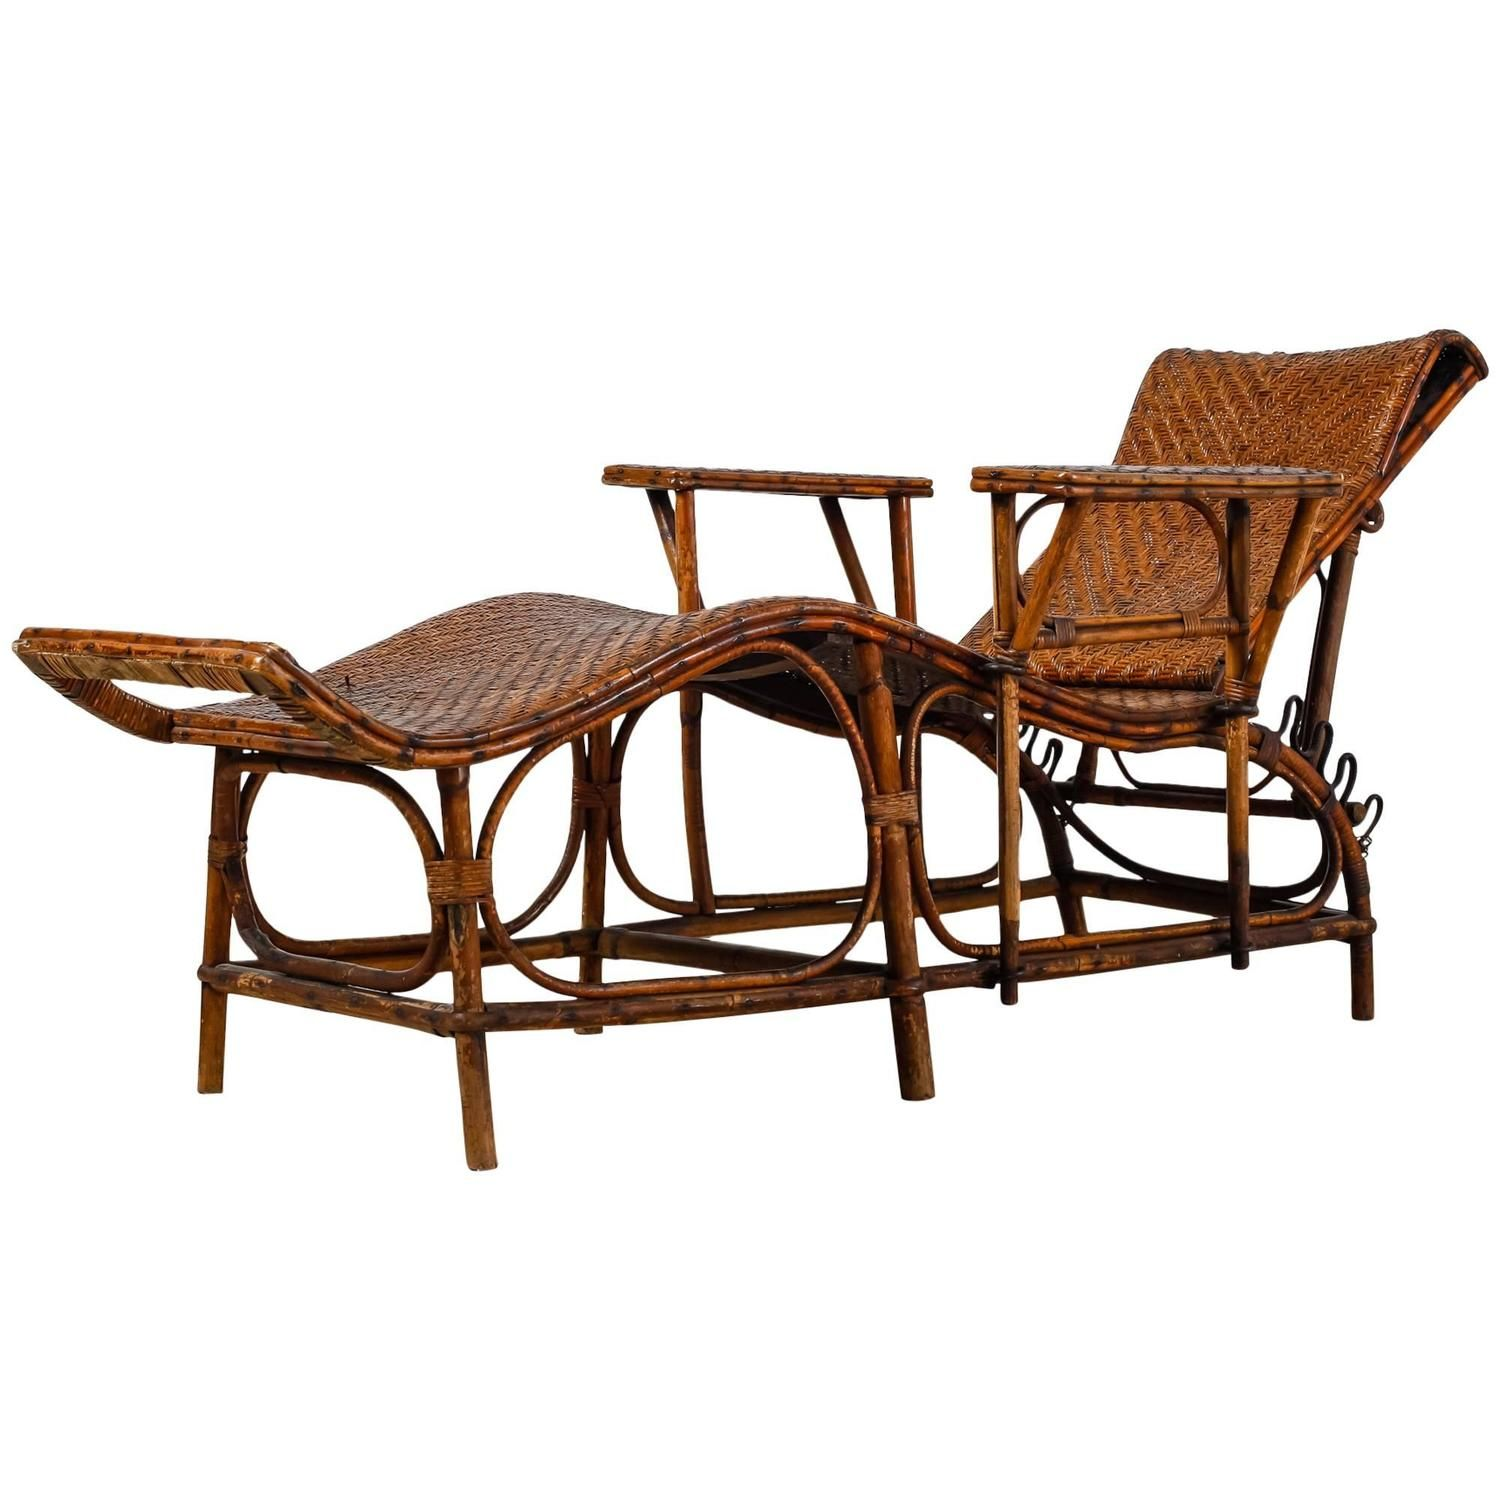 Adjustable Bamboo And Rattan Garden Chaise, Germany, 1920s 1930s | From A  Unique Collection Of Antique And Modern Chaise Longues At ...